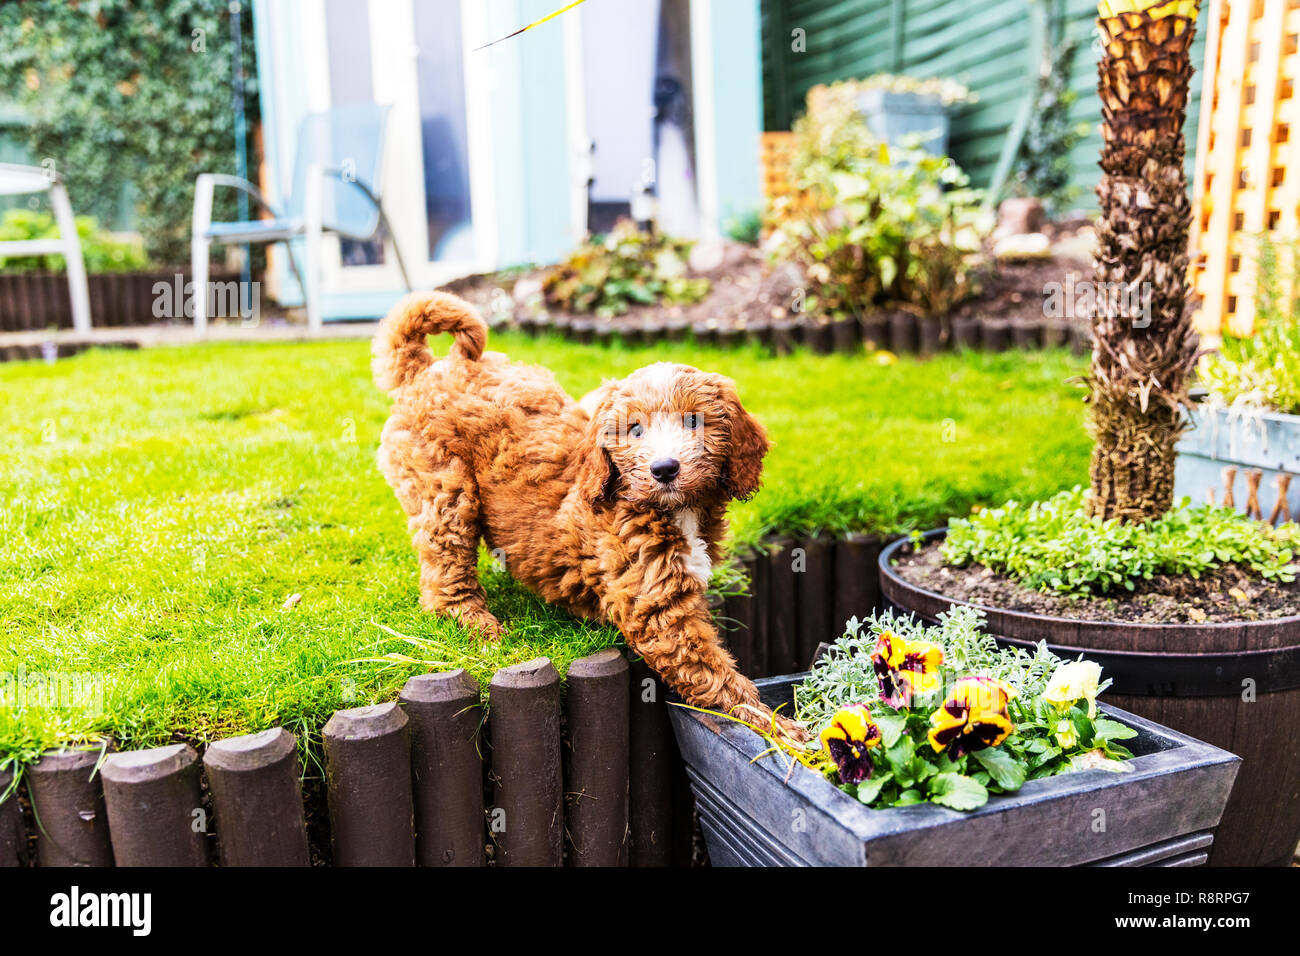 Mischievous dog, Mischievous puppy, cheeky puppy, cheeky dog, puppy, dog, cockapoo, naughty puppy, naughty dog, up to no good, naughty, cheeky, puppy Stock Photo